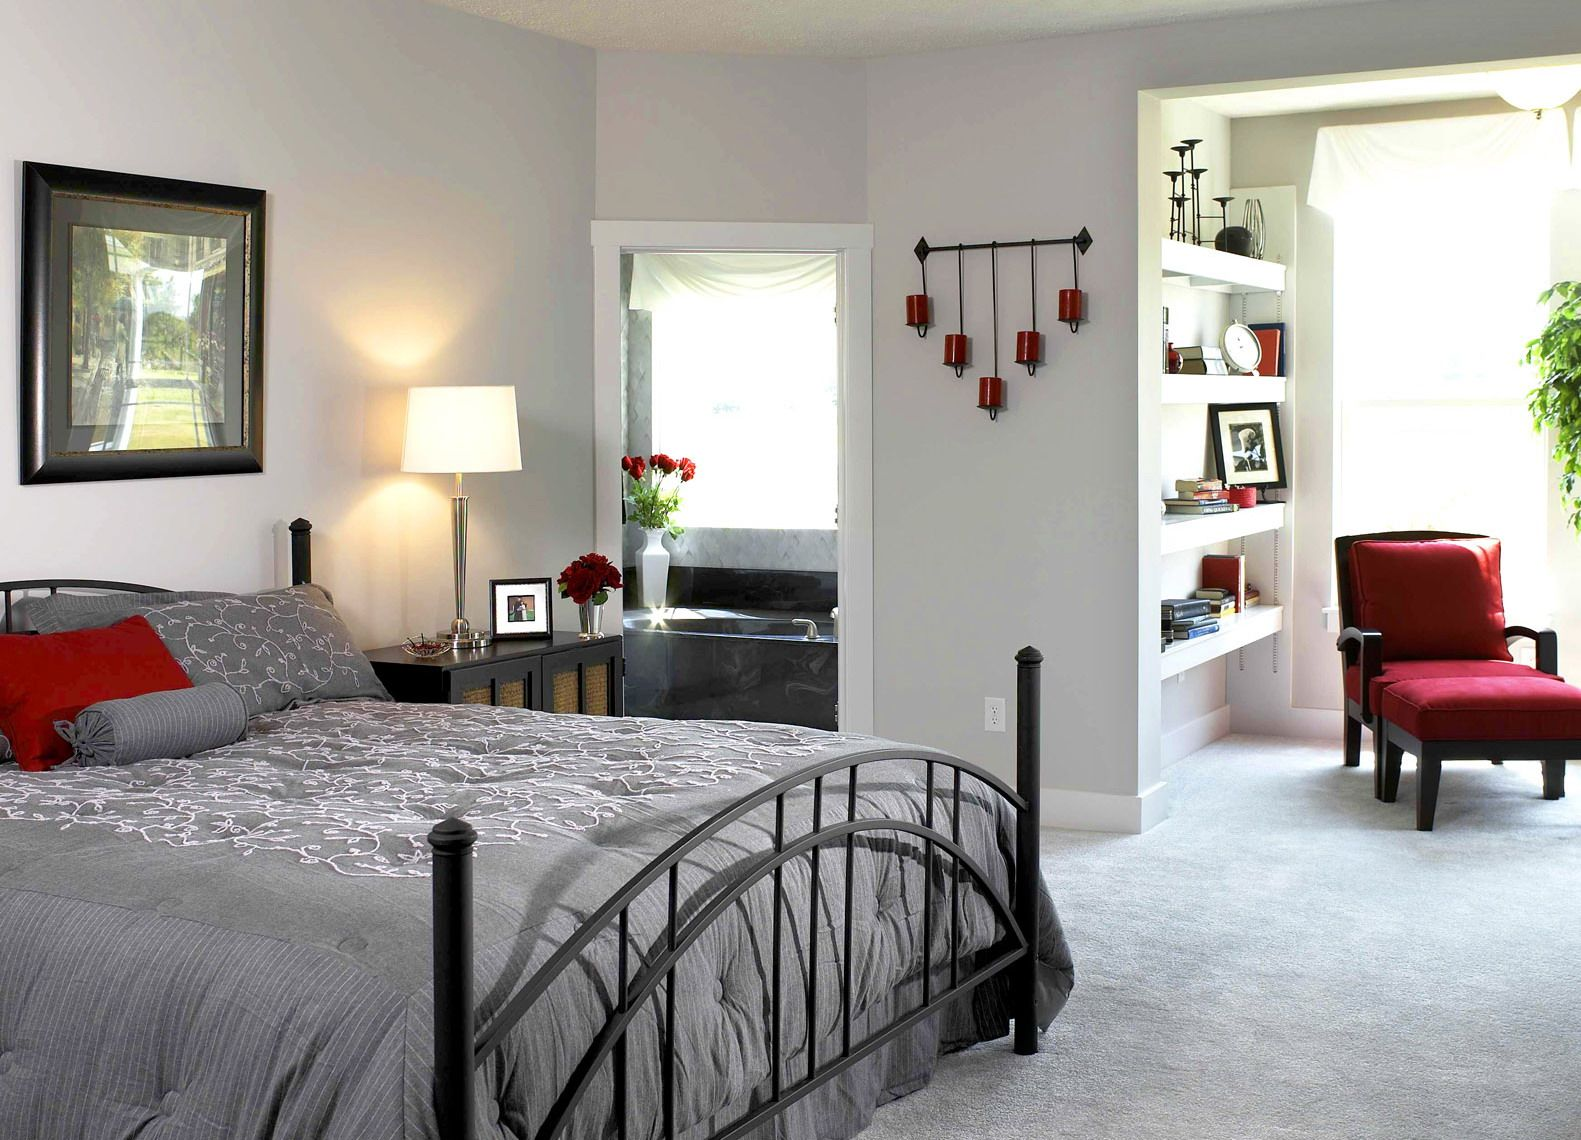 Bedroom color ideas grey and red - 17 Best Images About Red Gray On Bedrooms Grey